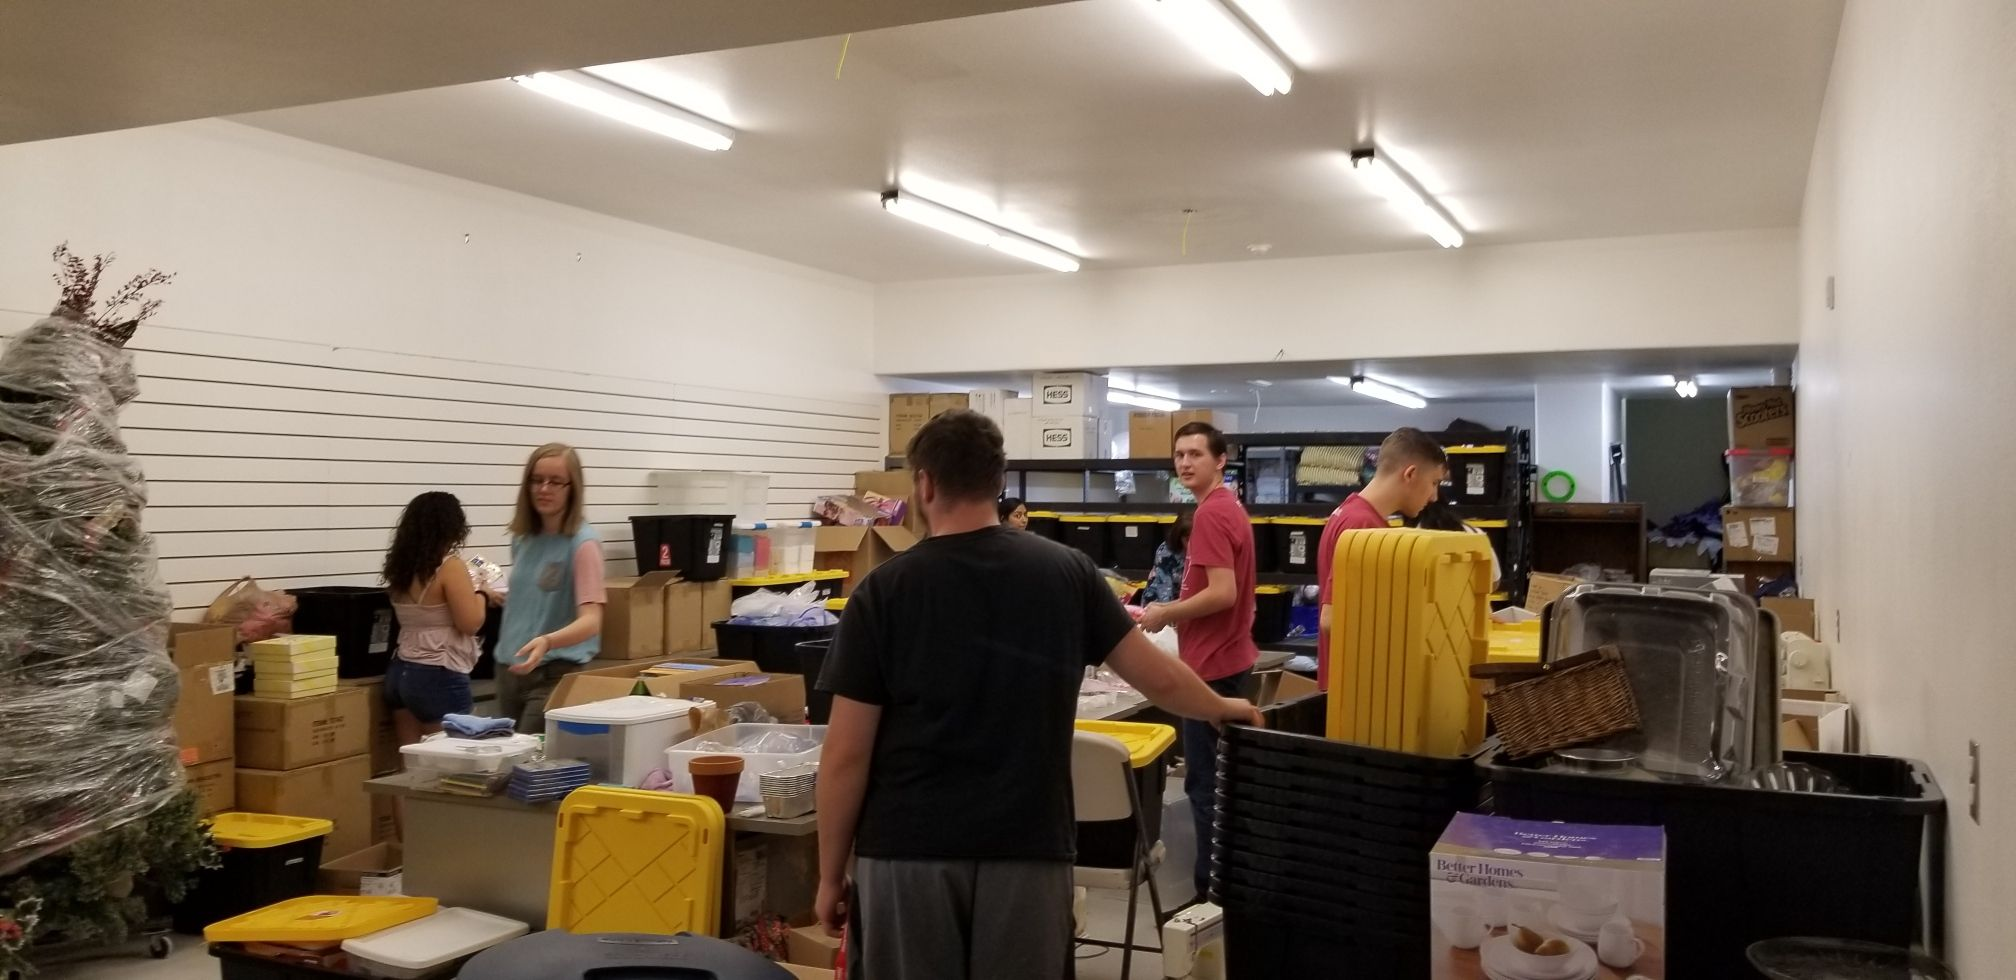 Volunteers clean up resource center in polygamist community